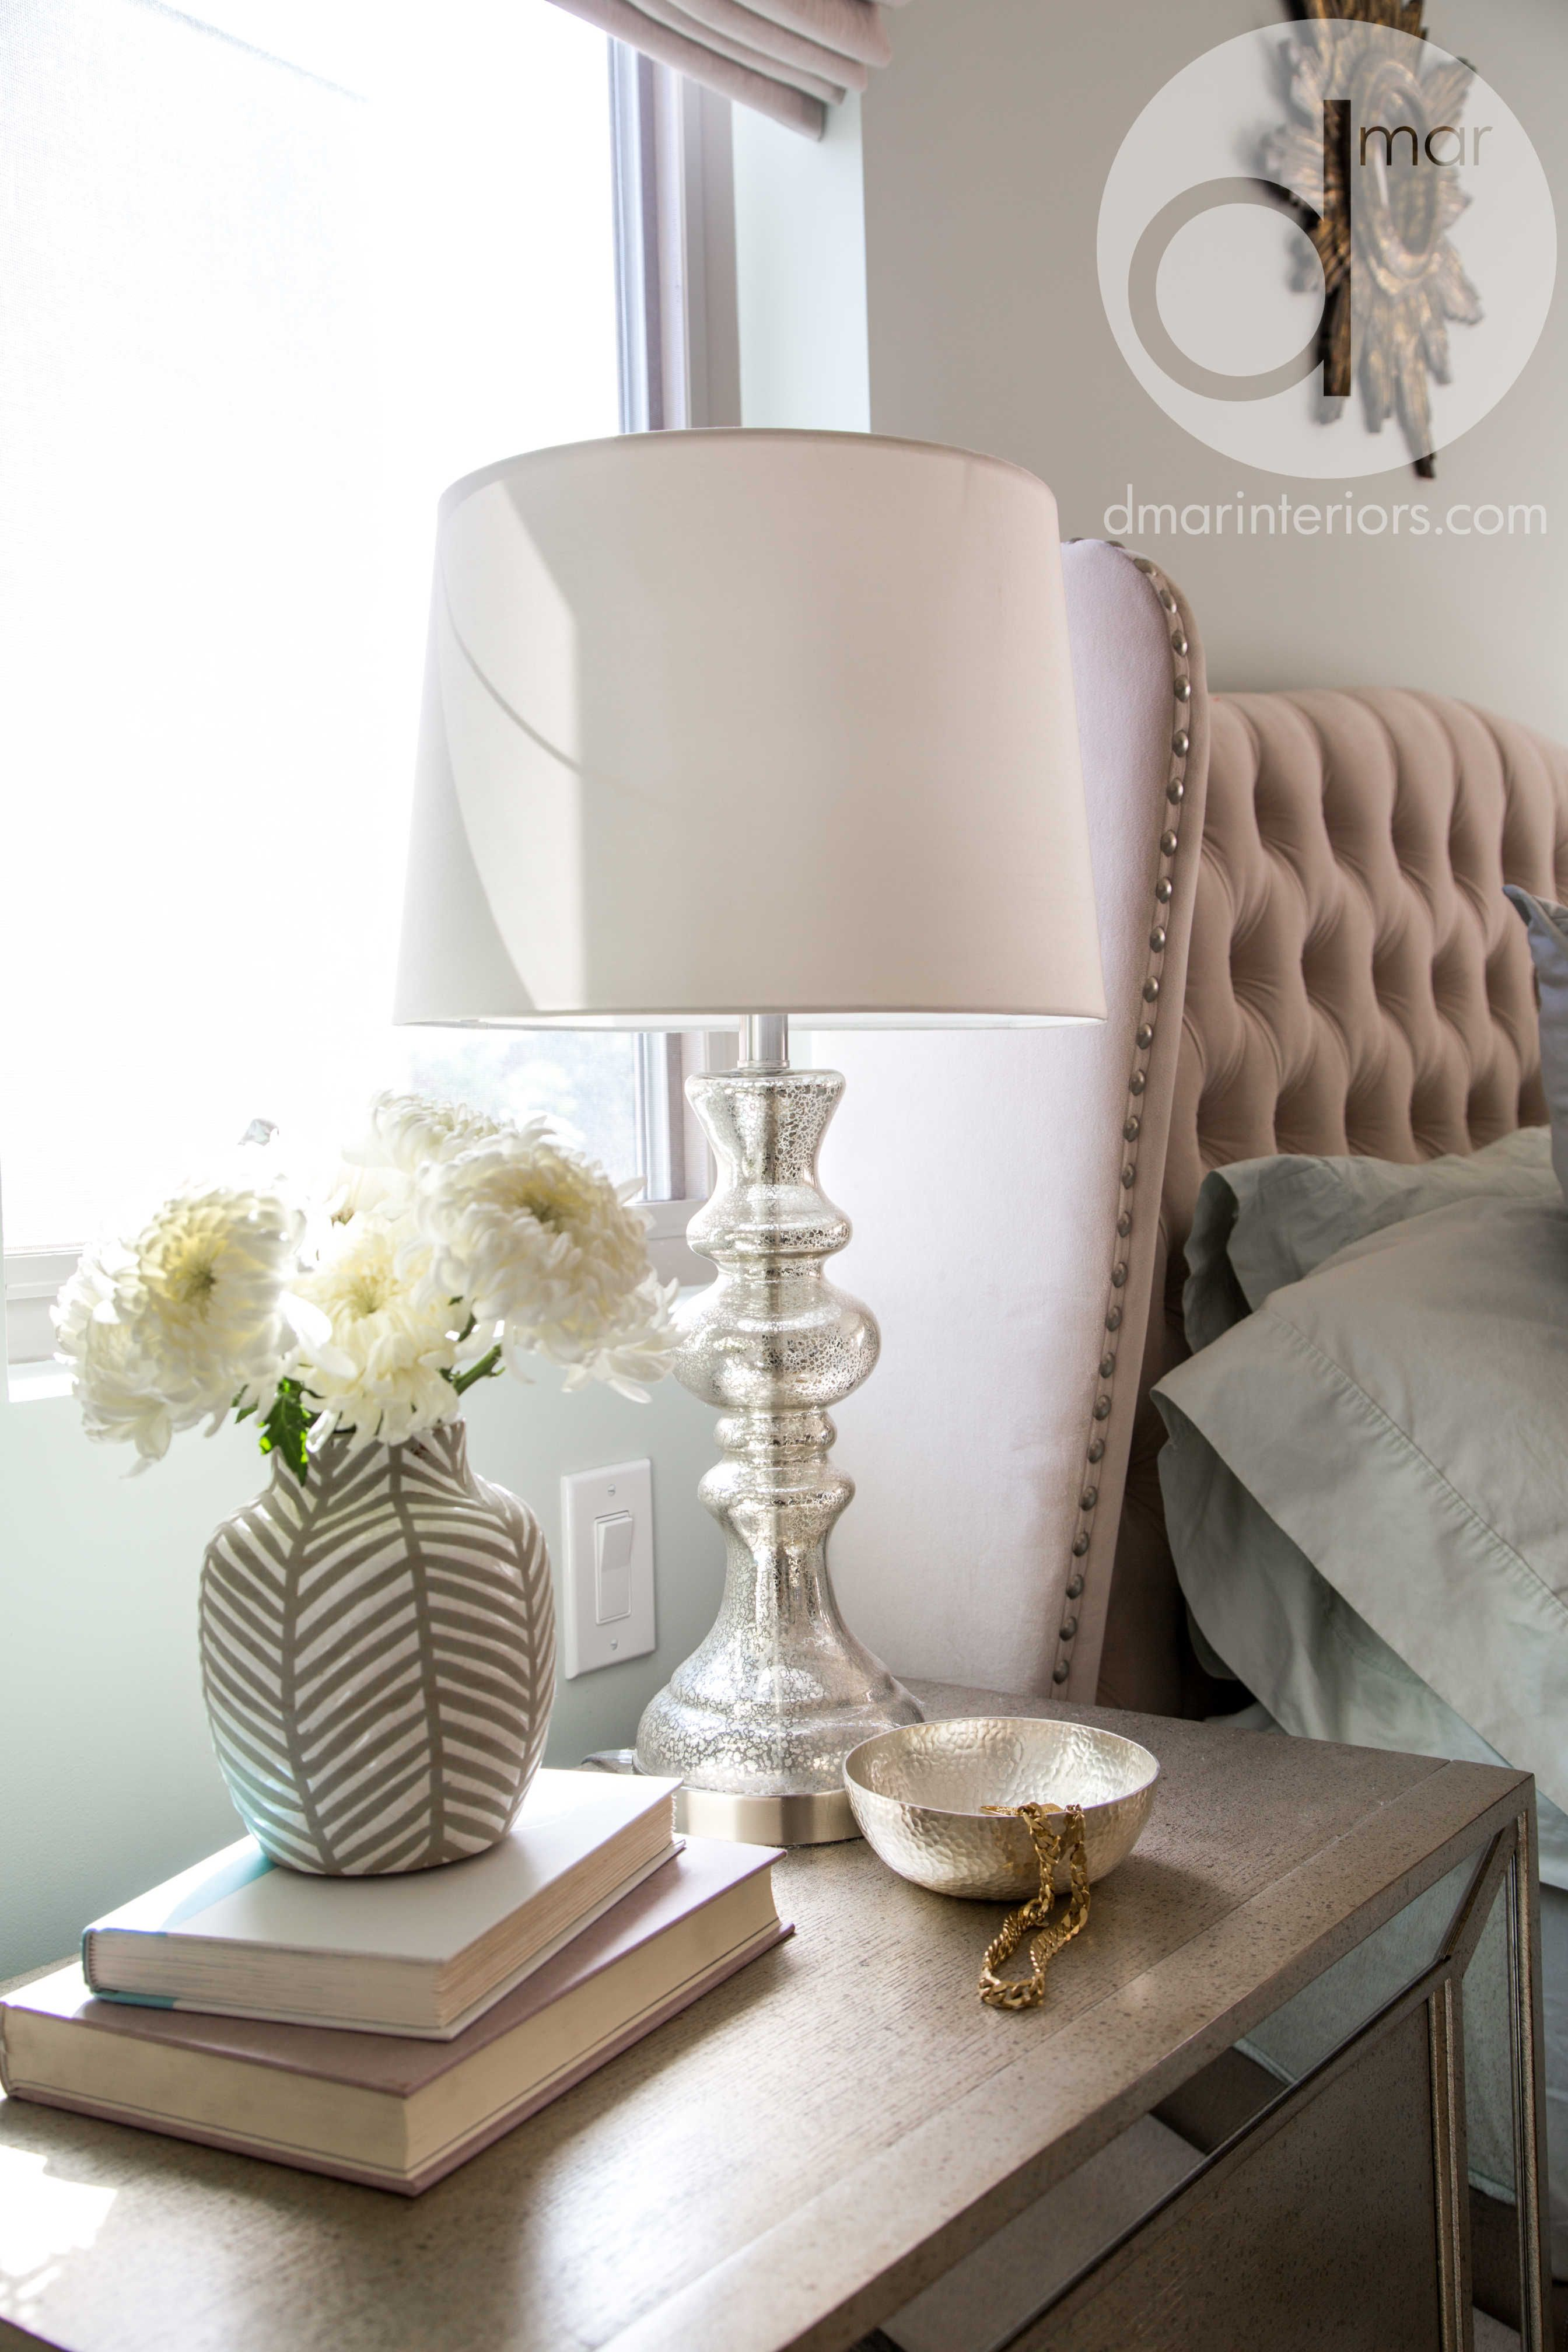 Nightstand details, flowers, neutral colors, mirrored nightstand, mercury glass table lamps